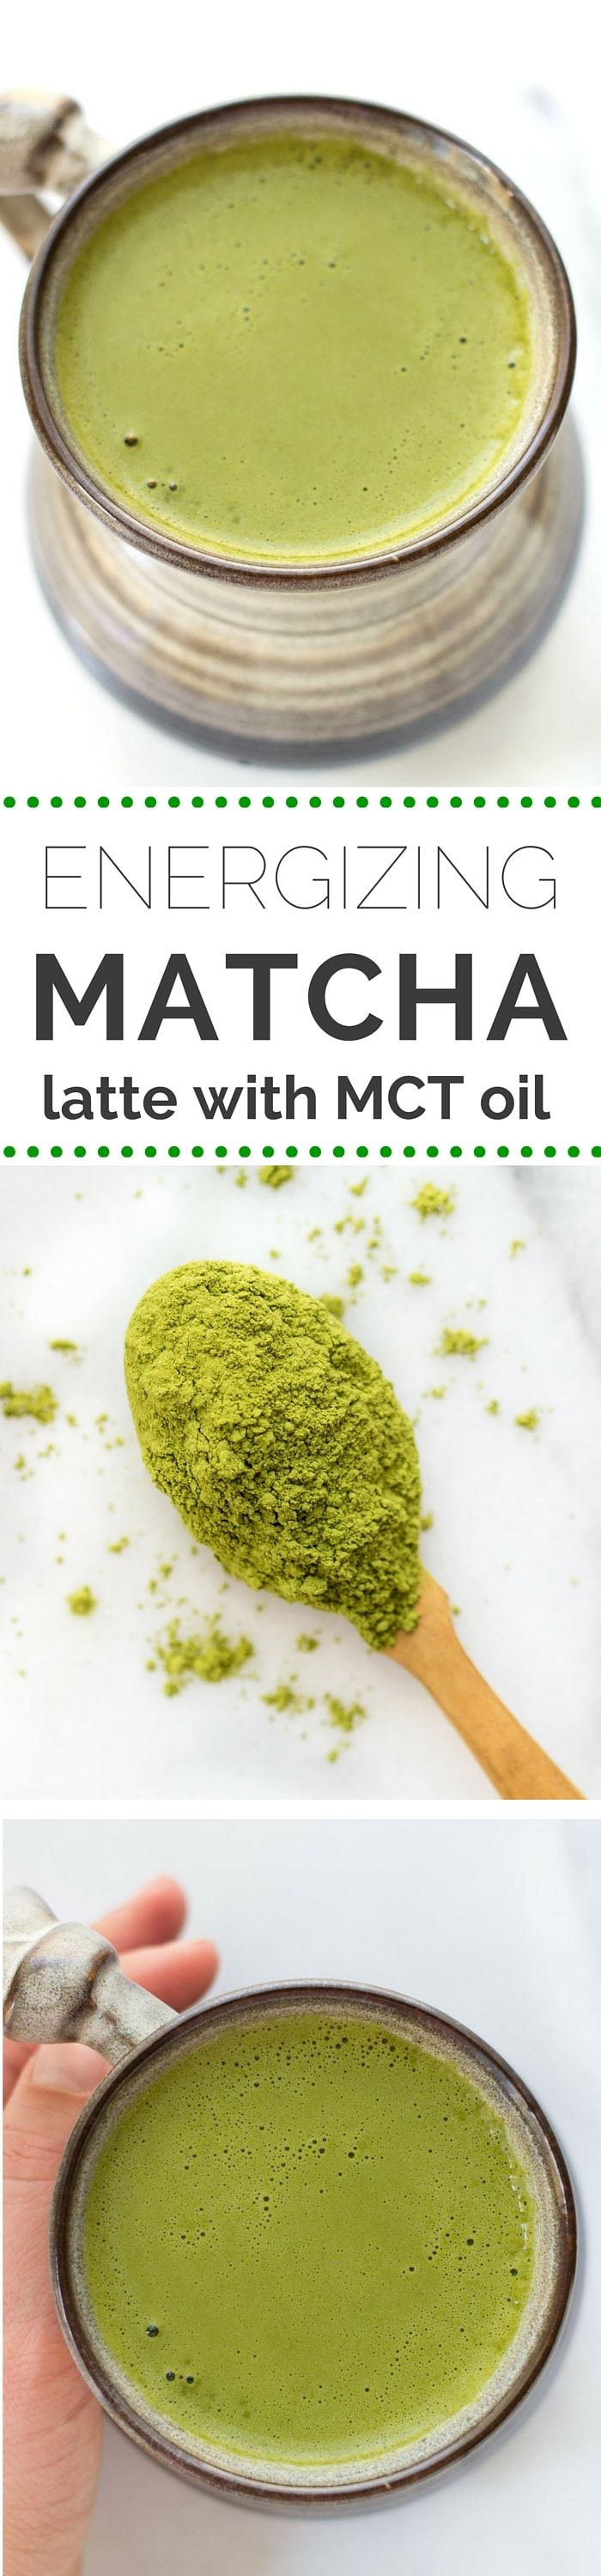 ENERGIZING MATCHA LATTE -- made in a blender with tons of brain-boosting ingredients like MCT oil and maca powder!